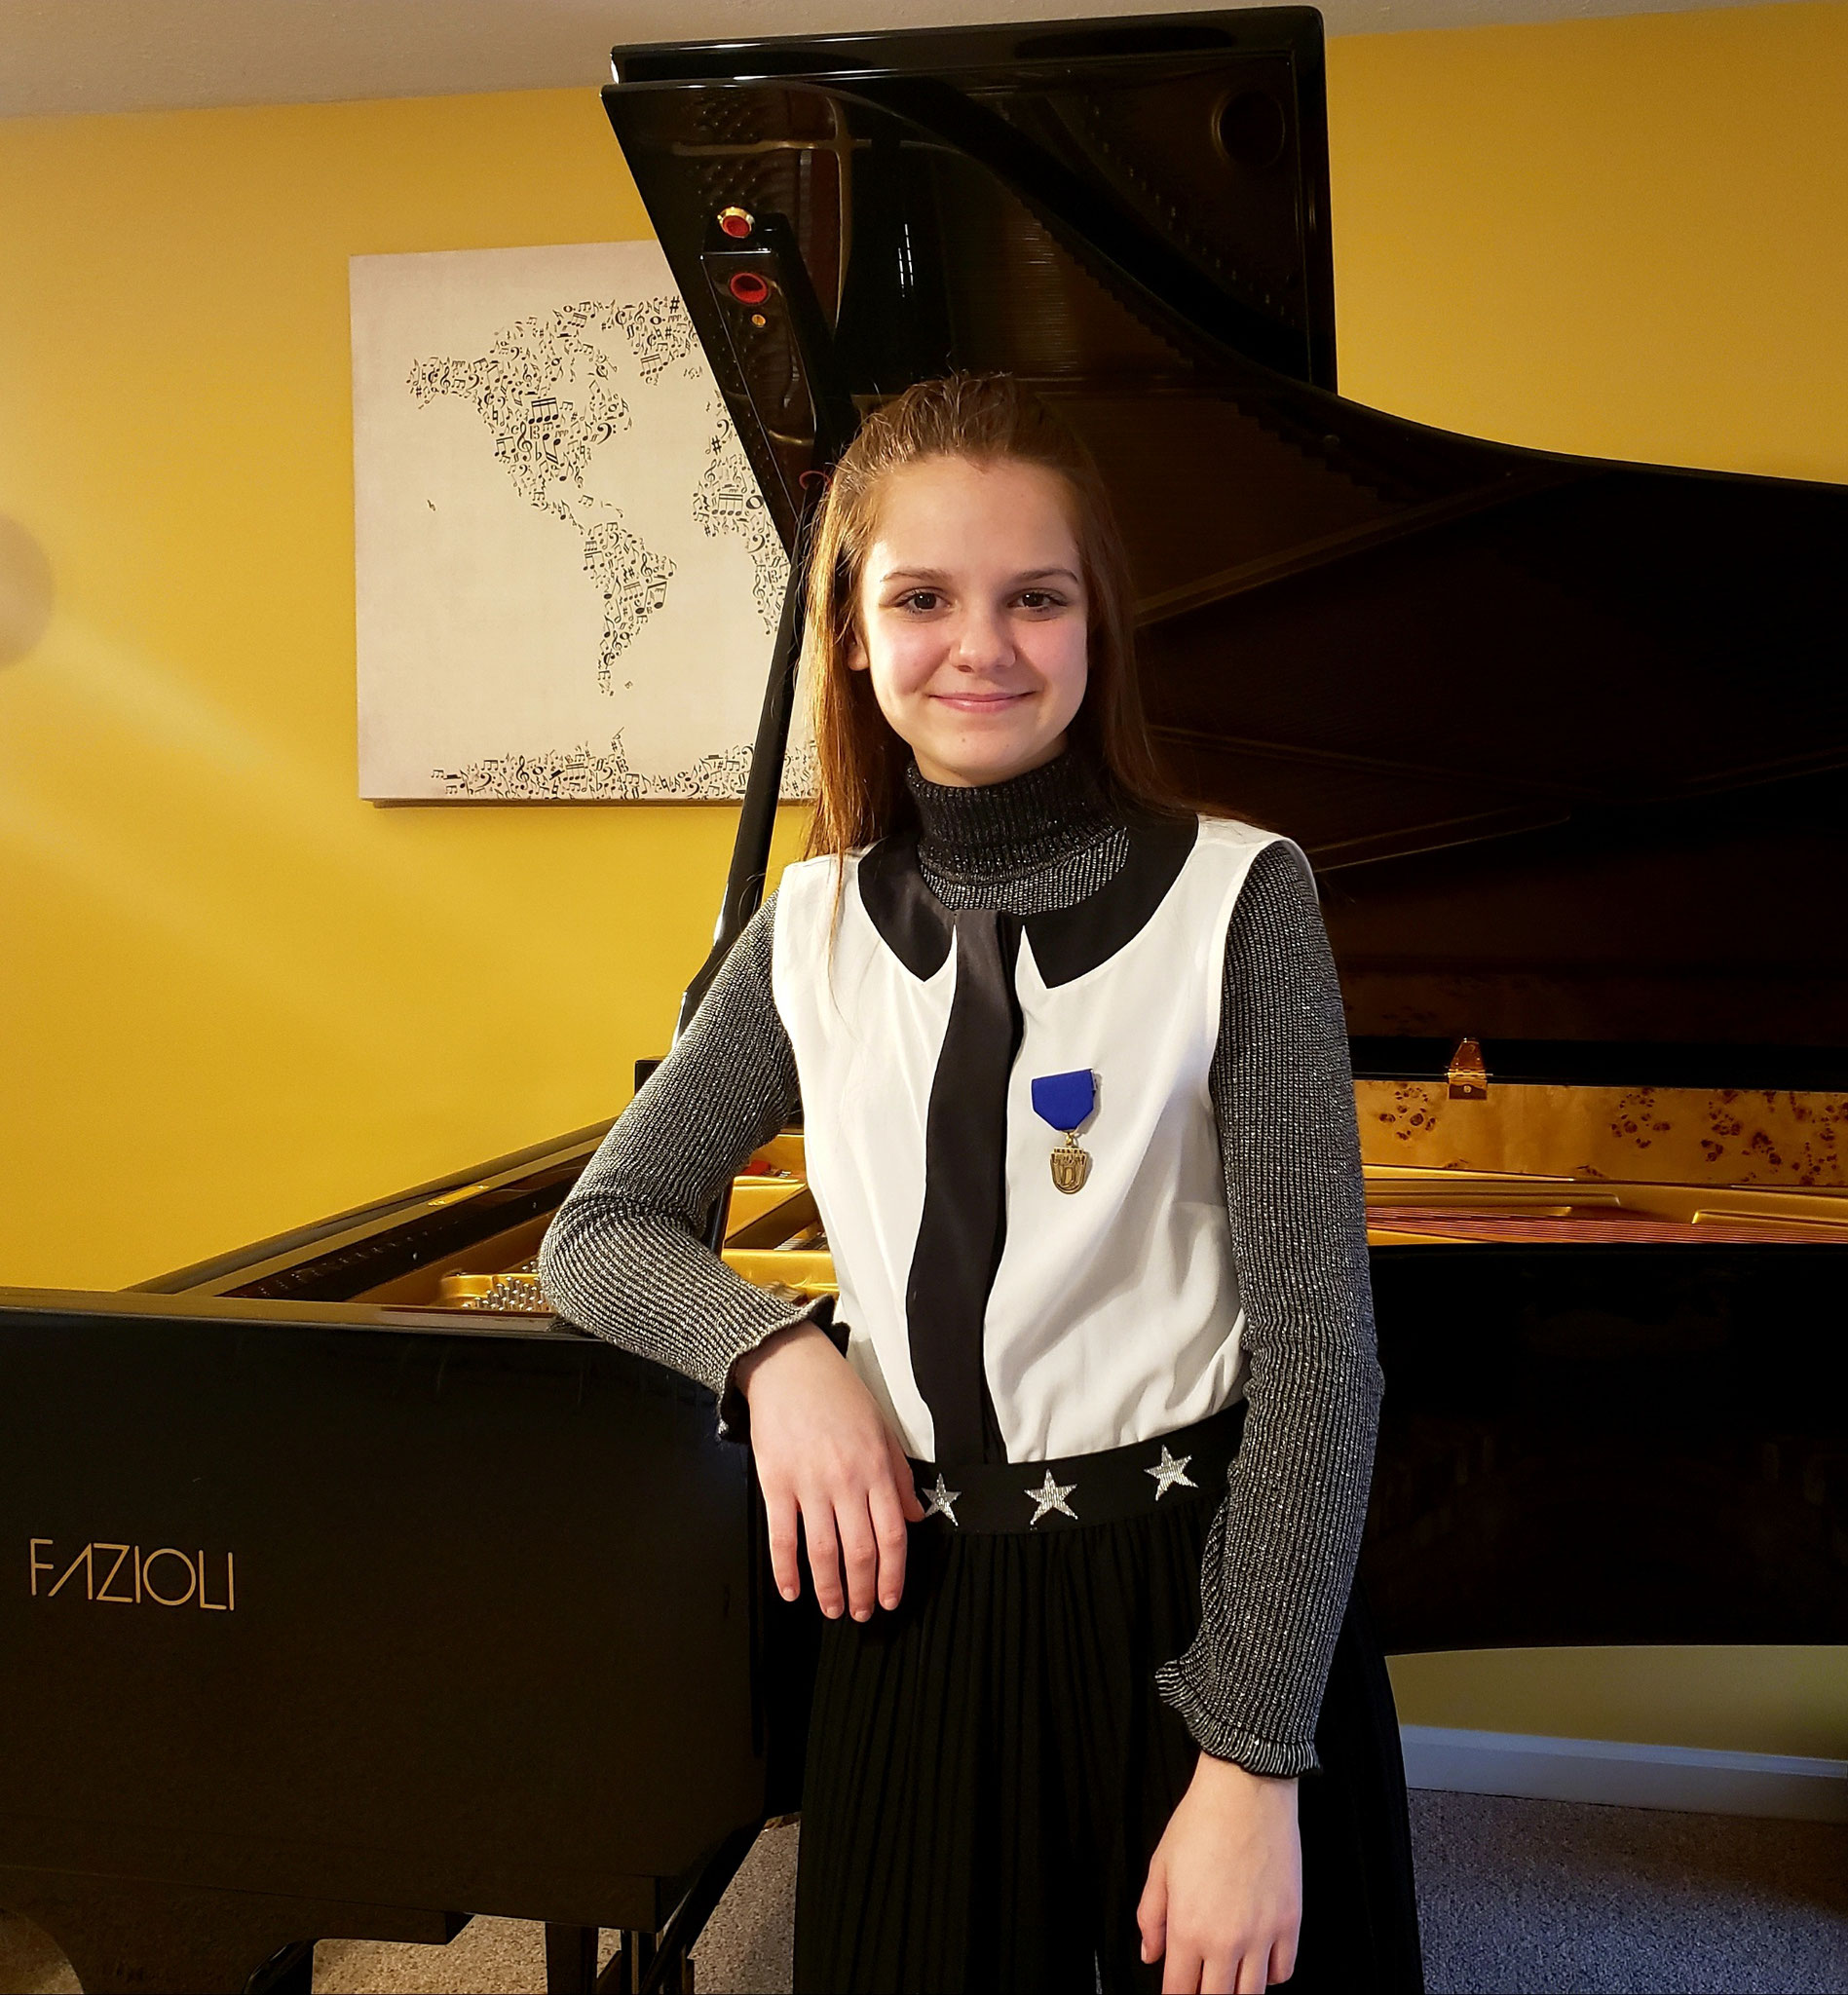 ELISA PLANO WON 1st PRIZE WITH PERFECT SCORE AT THE ISSMA COMPETITION IN BLOOMINGTON IN!